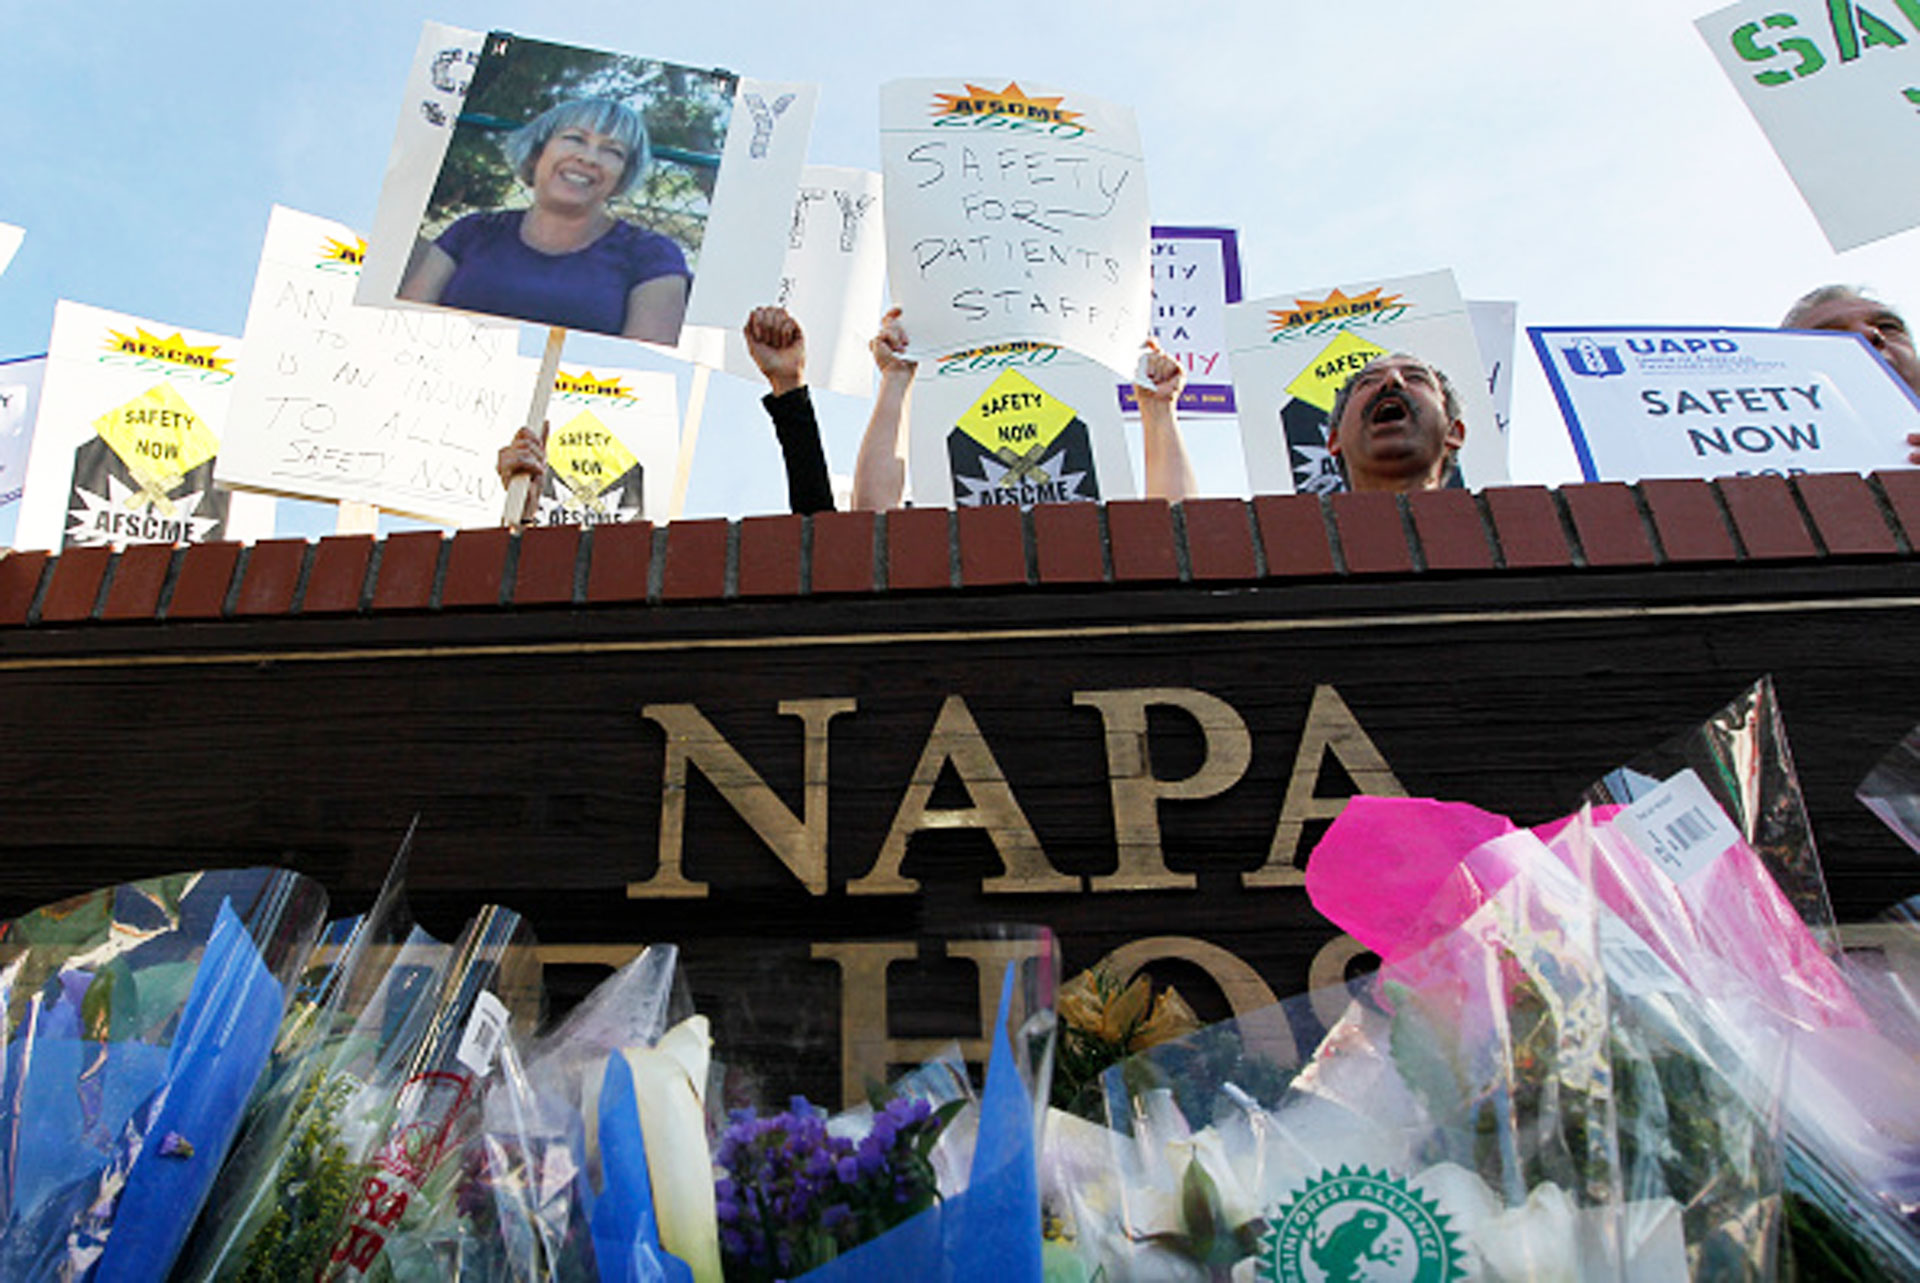 Nearly 200 Napa State Hospital workers demonstrate for safer conditions in 2010, in the wake of the killing of staff member Donna Gross at the hands of a patient.